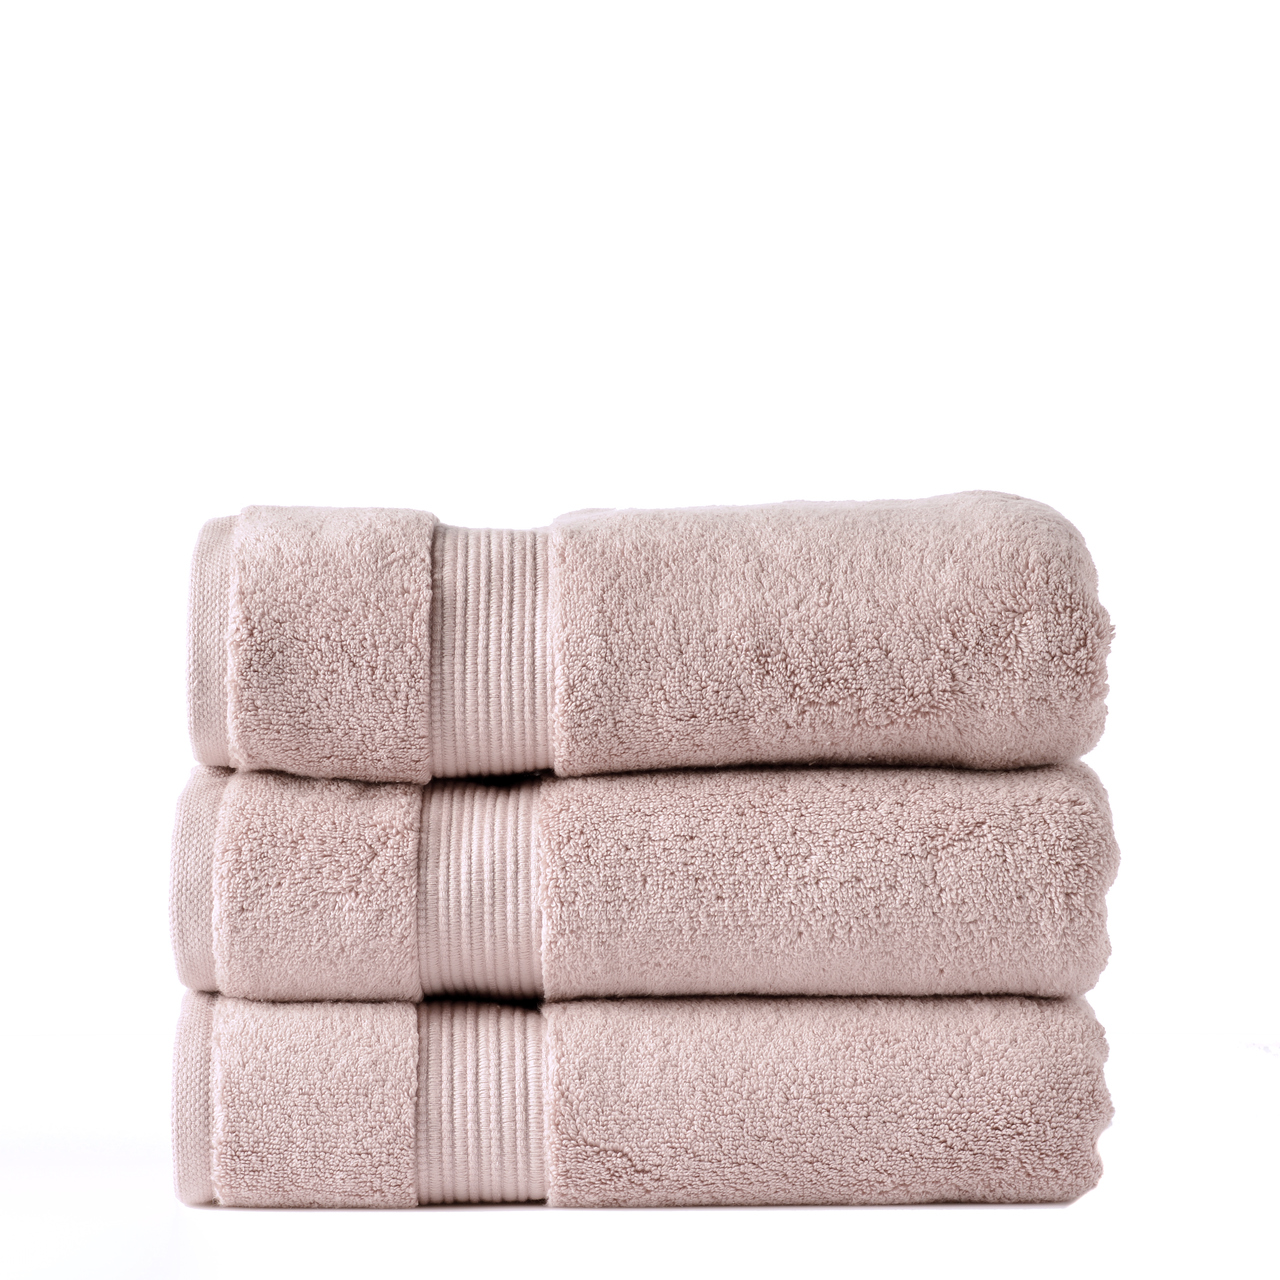 Our Zero Twist 650 gsm 100% cotton bath towels are soft and plush. They are colourfast and durable. The drying becomes more enhanced with every wash maintaing a soft and plush texture.  Colour Rosewood There are 10 beautiful colours to choose from all with matching accessories.